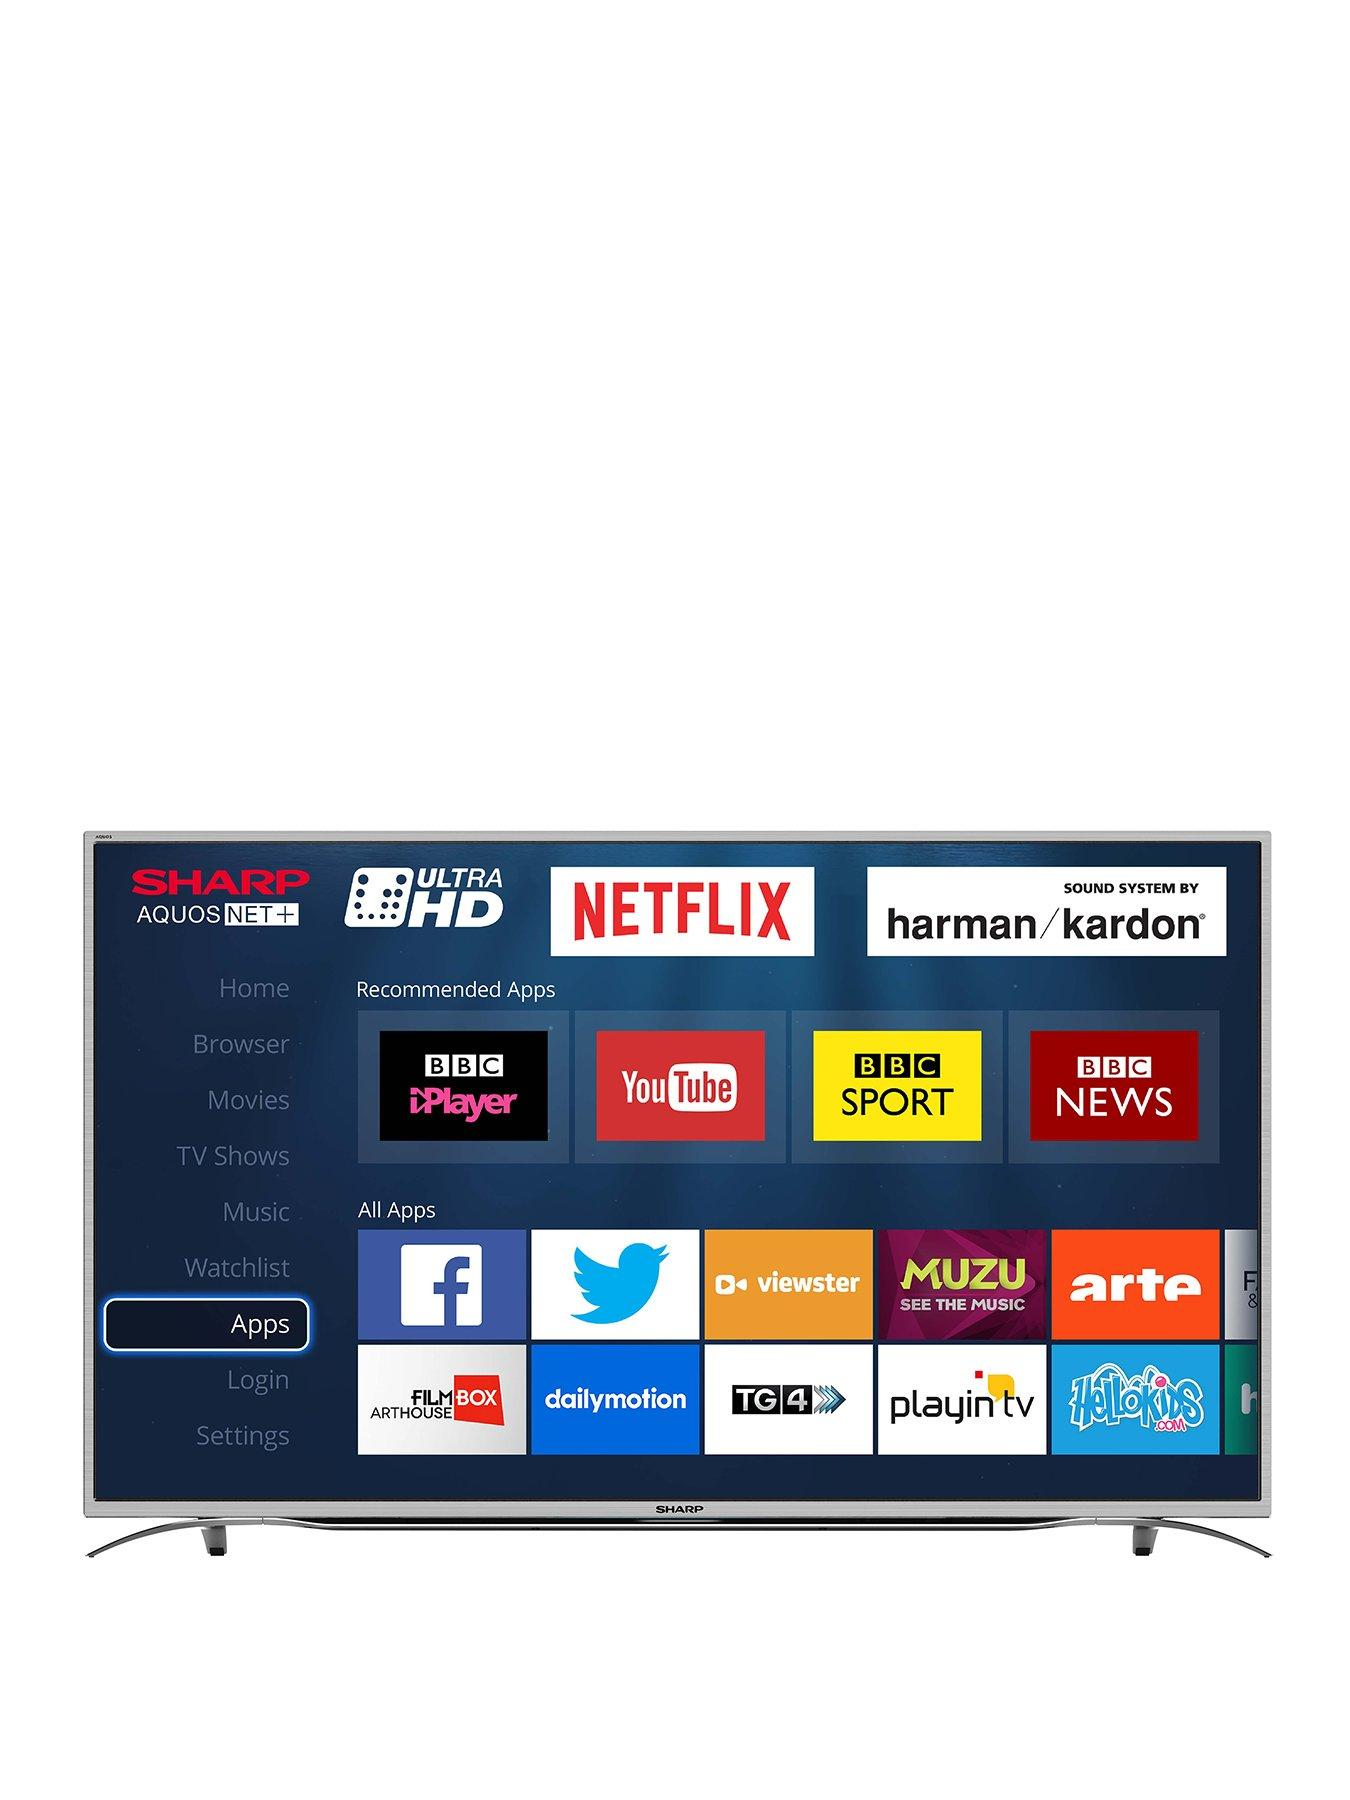 sharp 55 inch lc 55cug8052k 4k ultra hd smart led tv. sharp lc-55cug8362ks 55 inch, 4k ultra hd certified, smart tv - black | very.co.uk inch lc 55cug8052k 4k hd led tv d